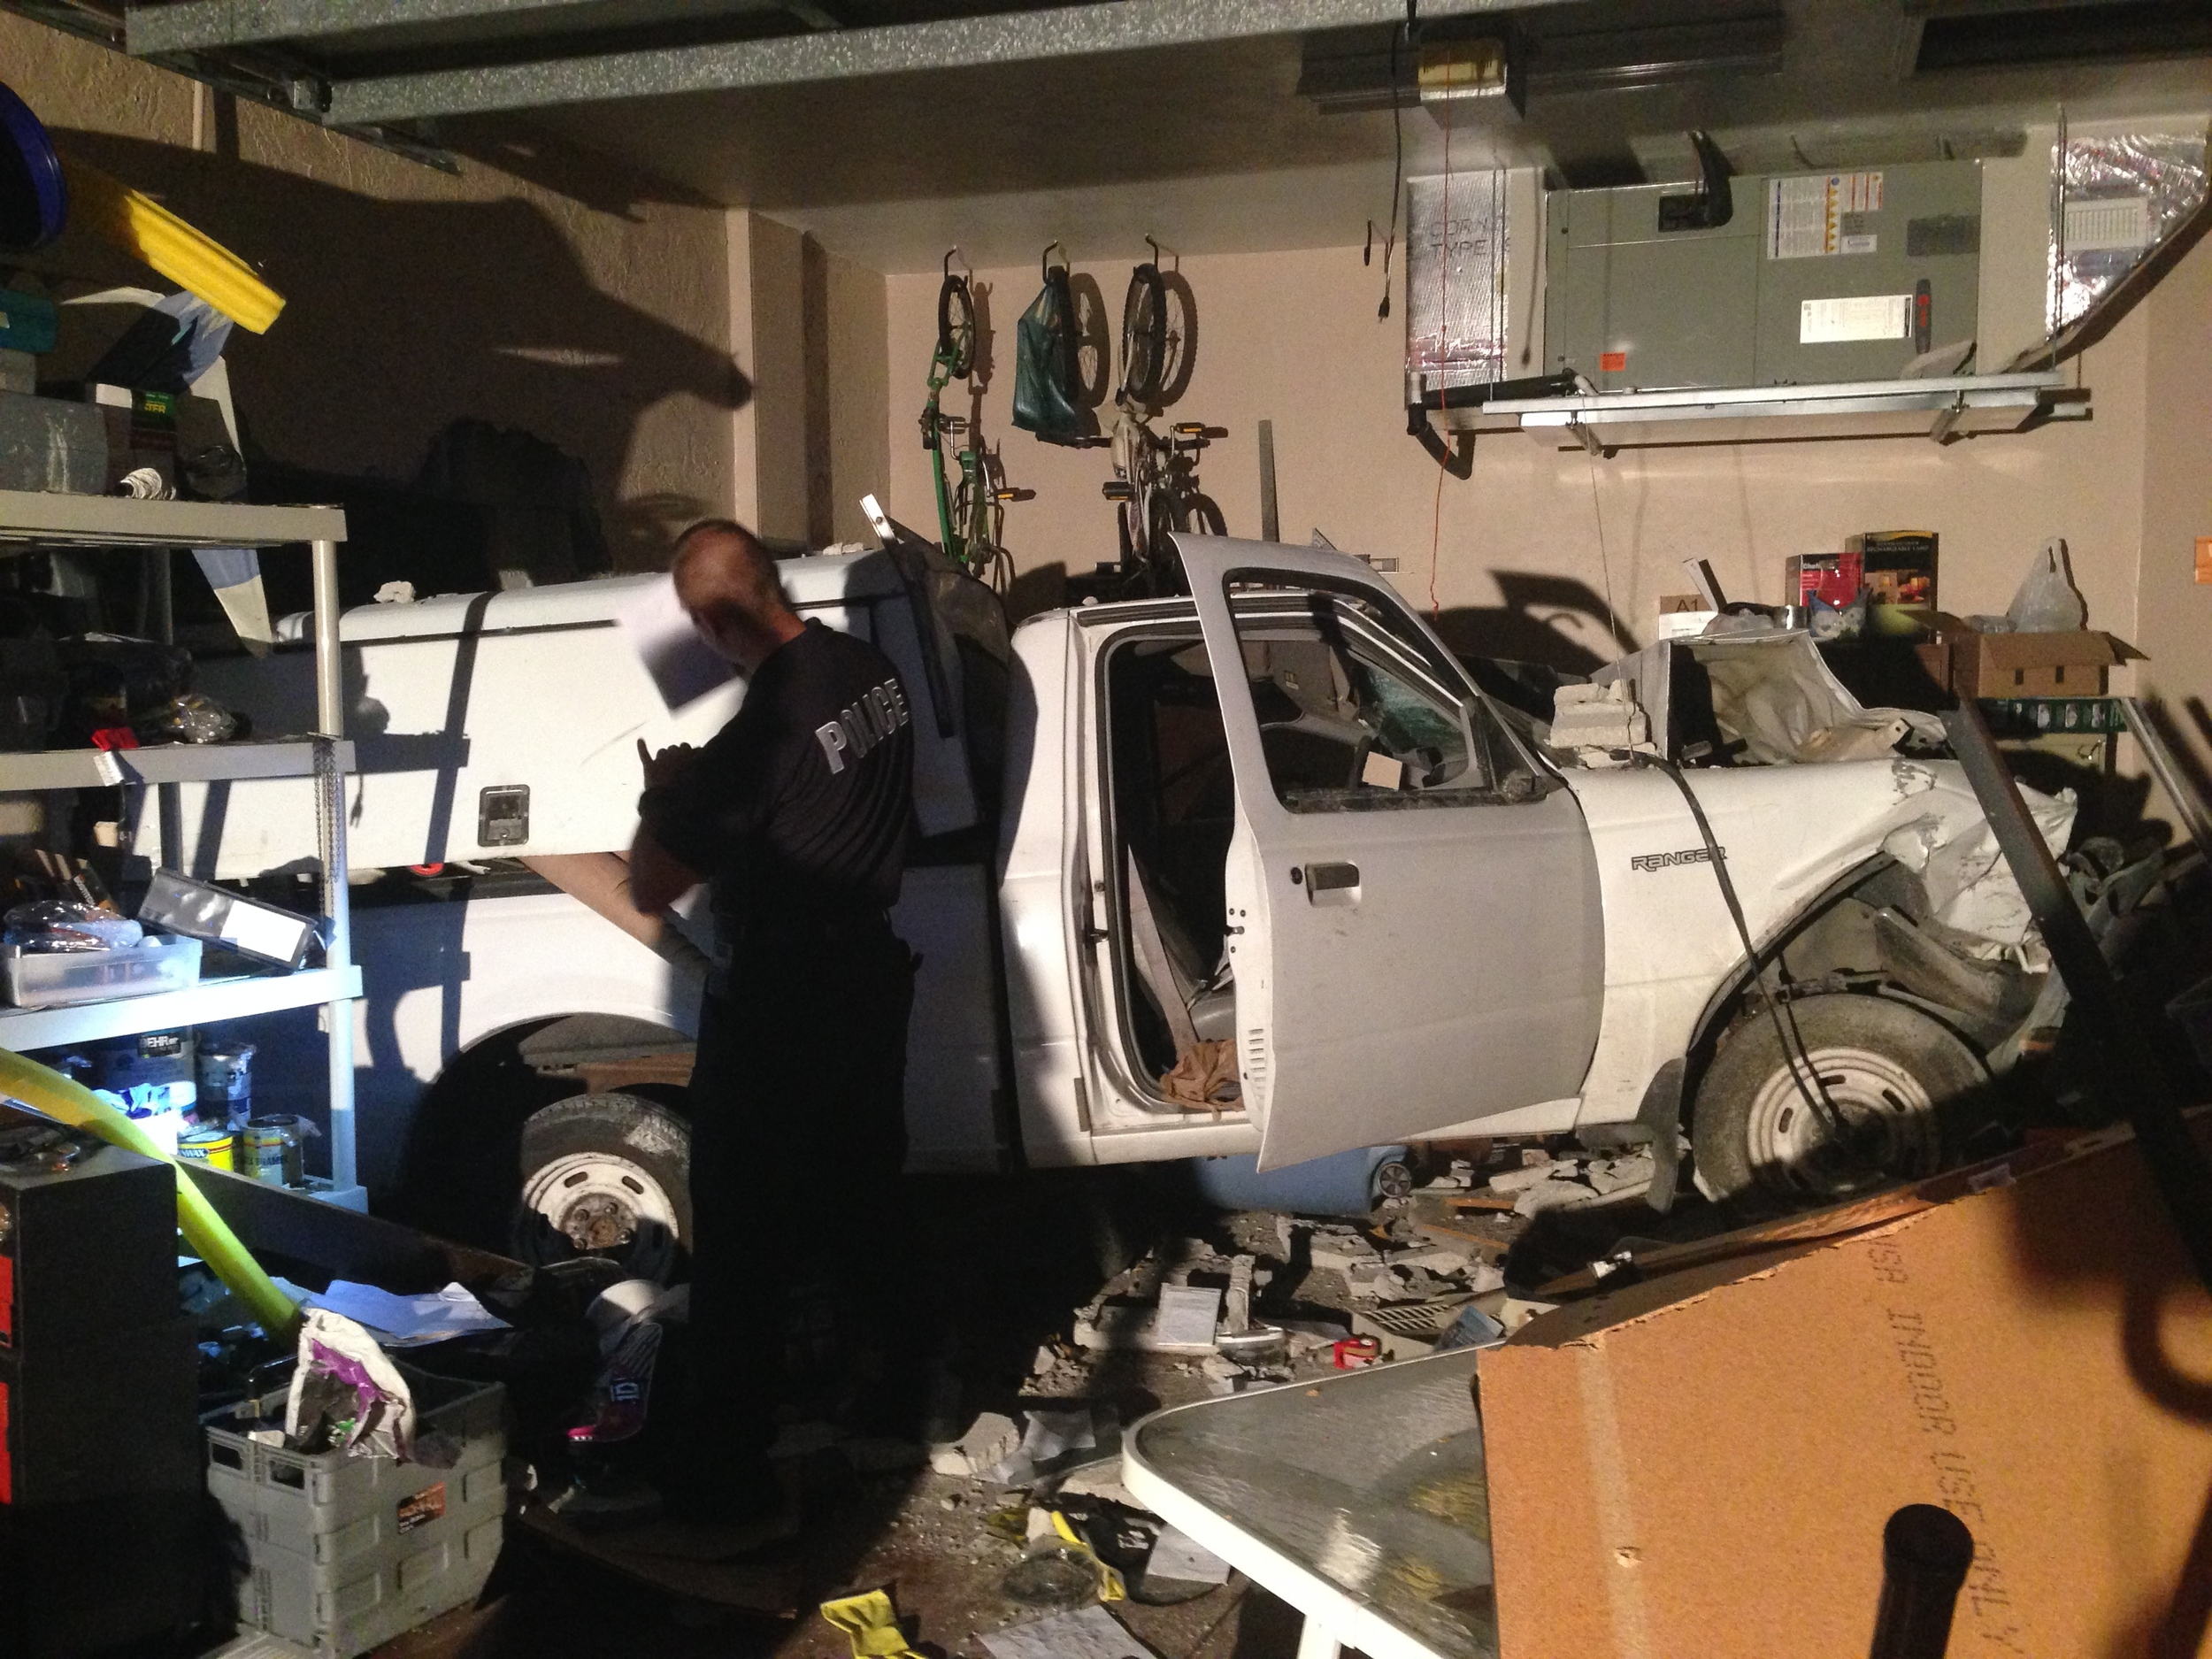 PHOTO: On December 19, 2013 at 4:27 PM, Cape Coral Police Department responded to a SW Cape Coral home where a driver crashed his white pickup truck into a home. (Photo Courtesy of Cape Coral Police Department)